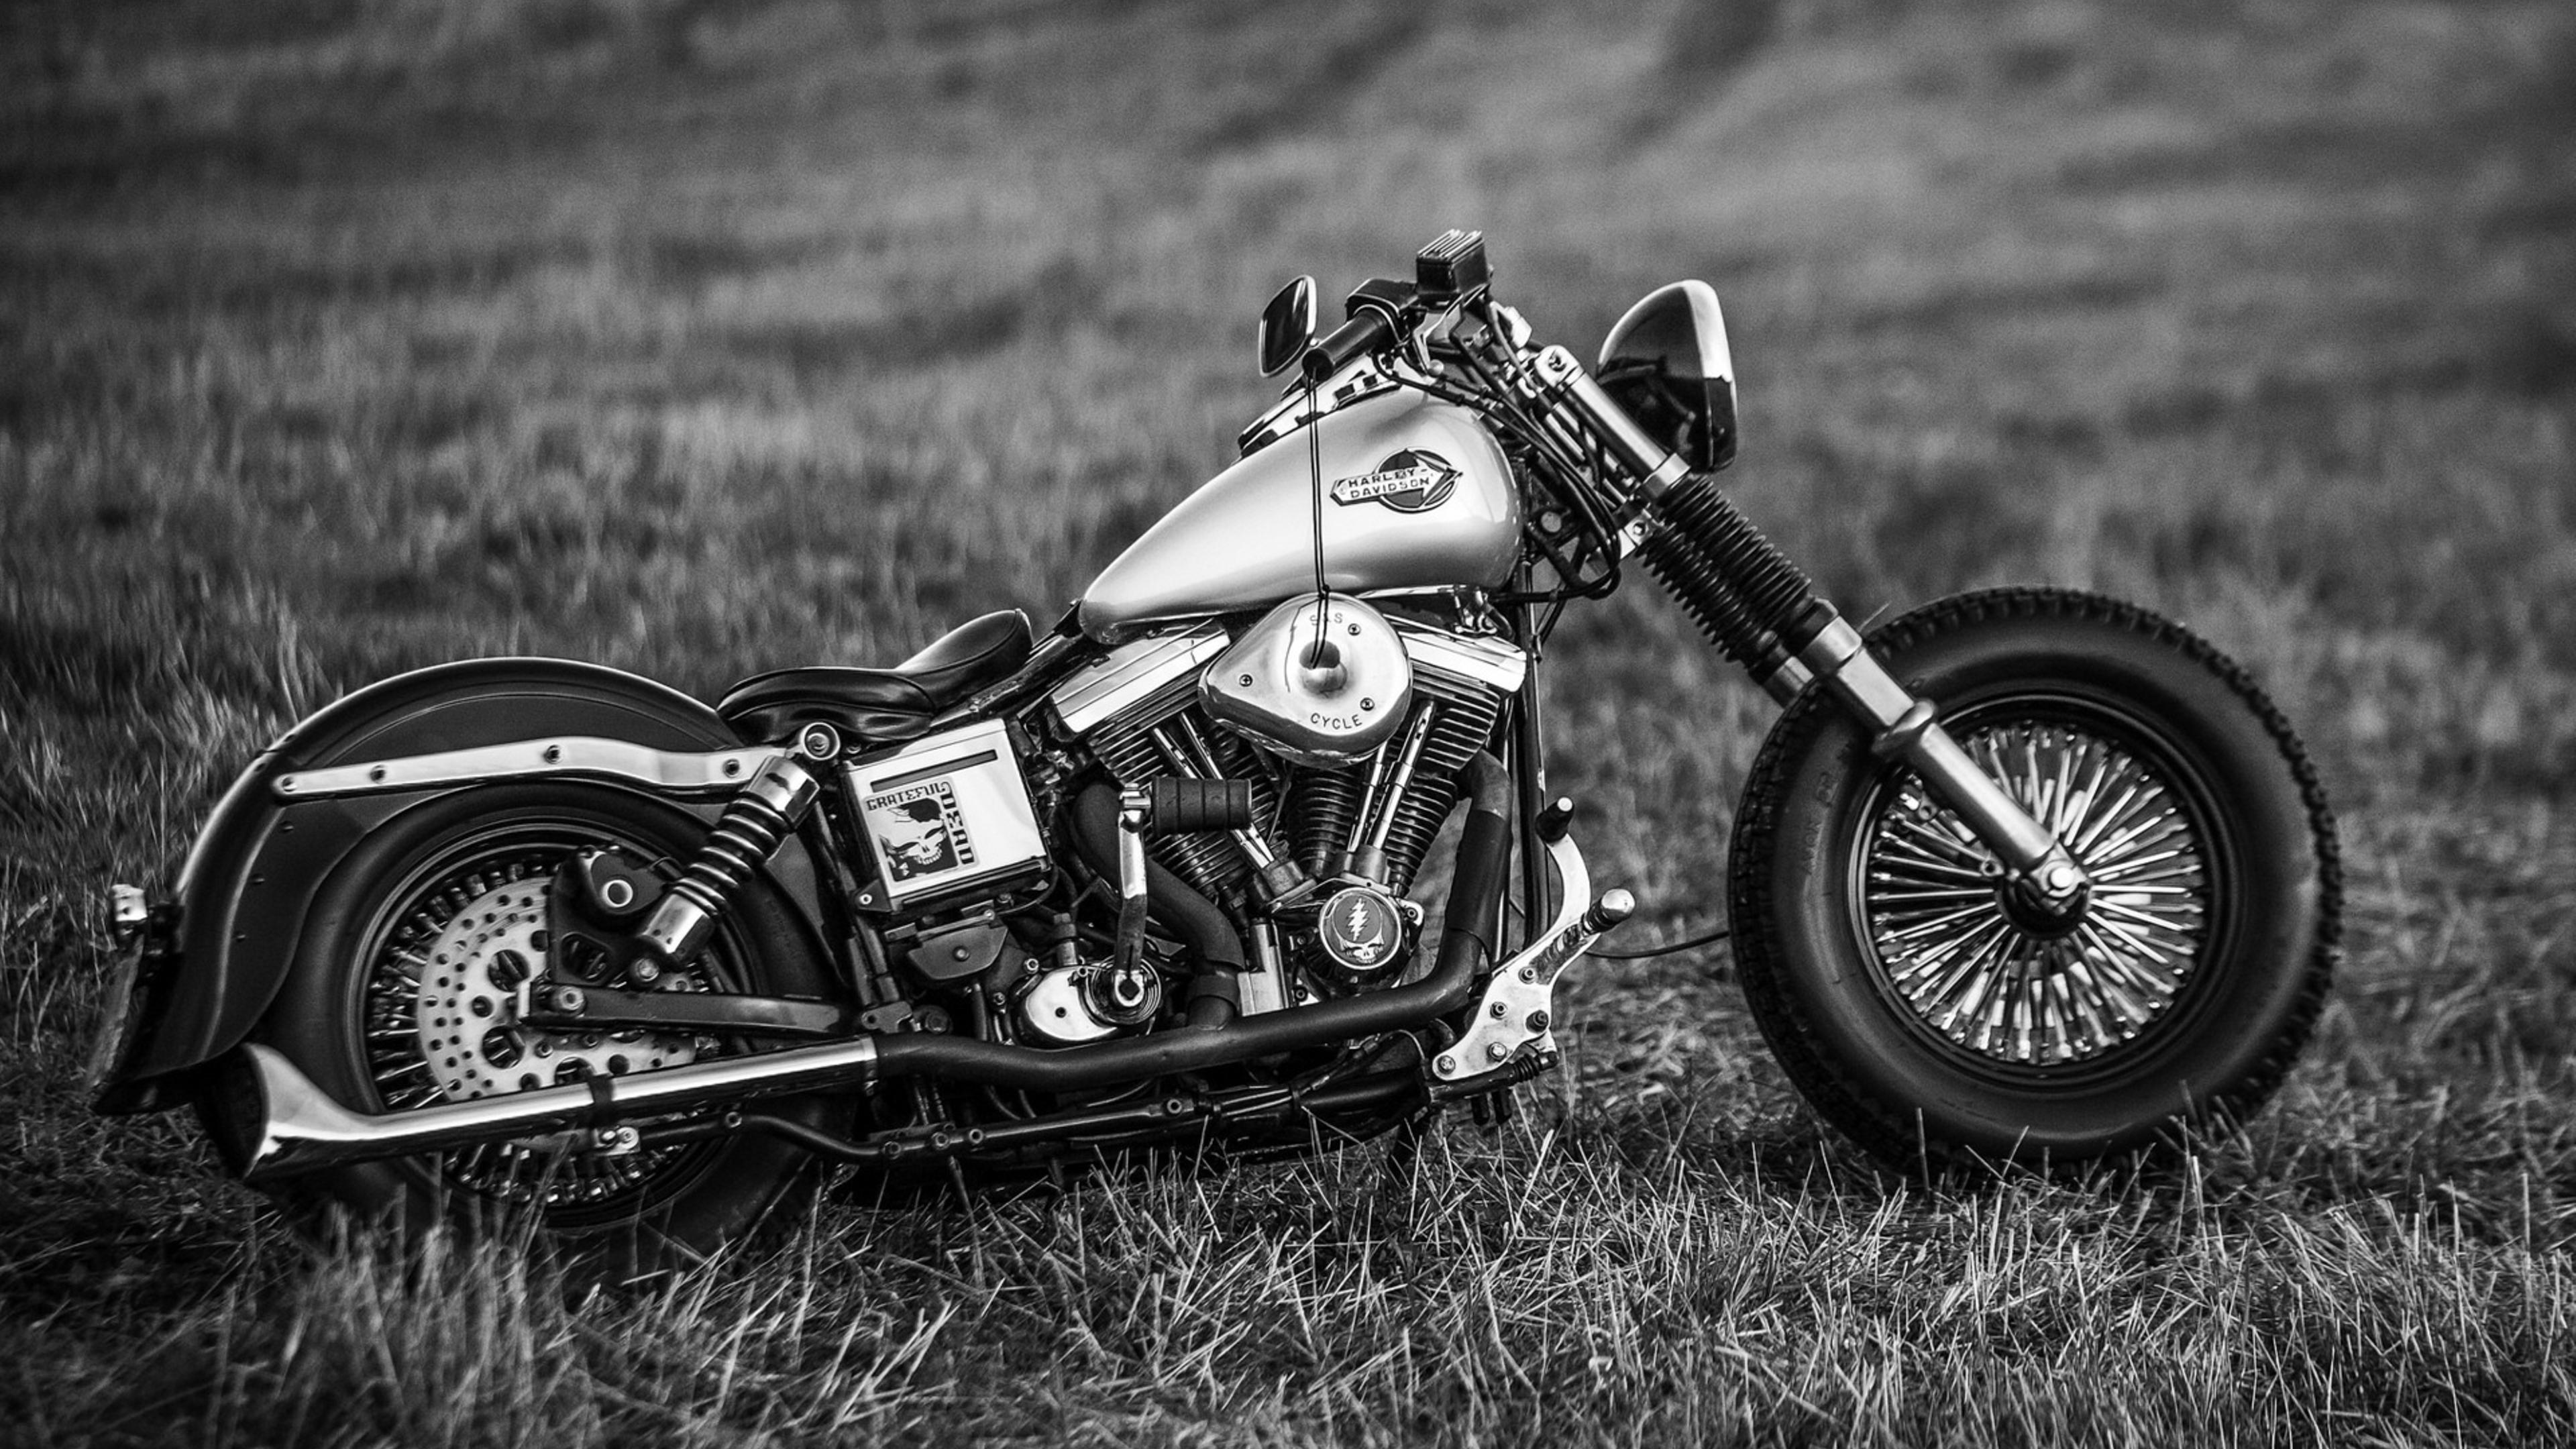 Black White Harley Davidson Motorcycle Wallpaper Download 3840x2160 Images Bikes